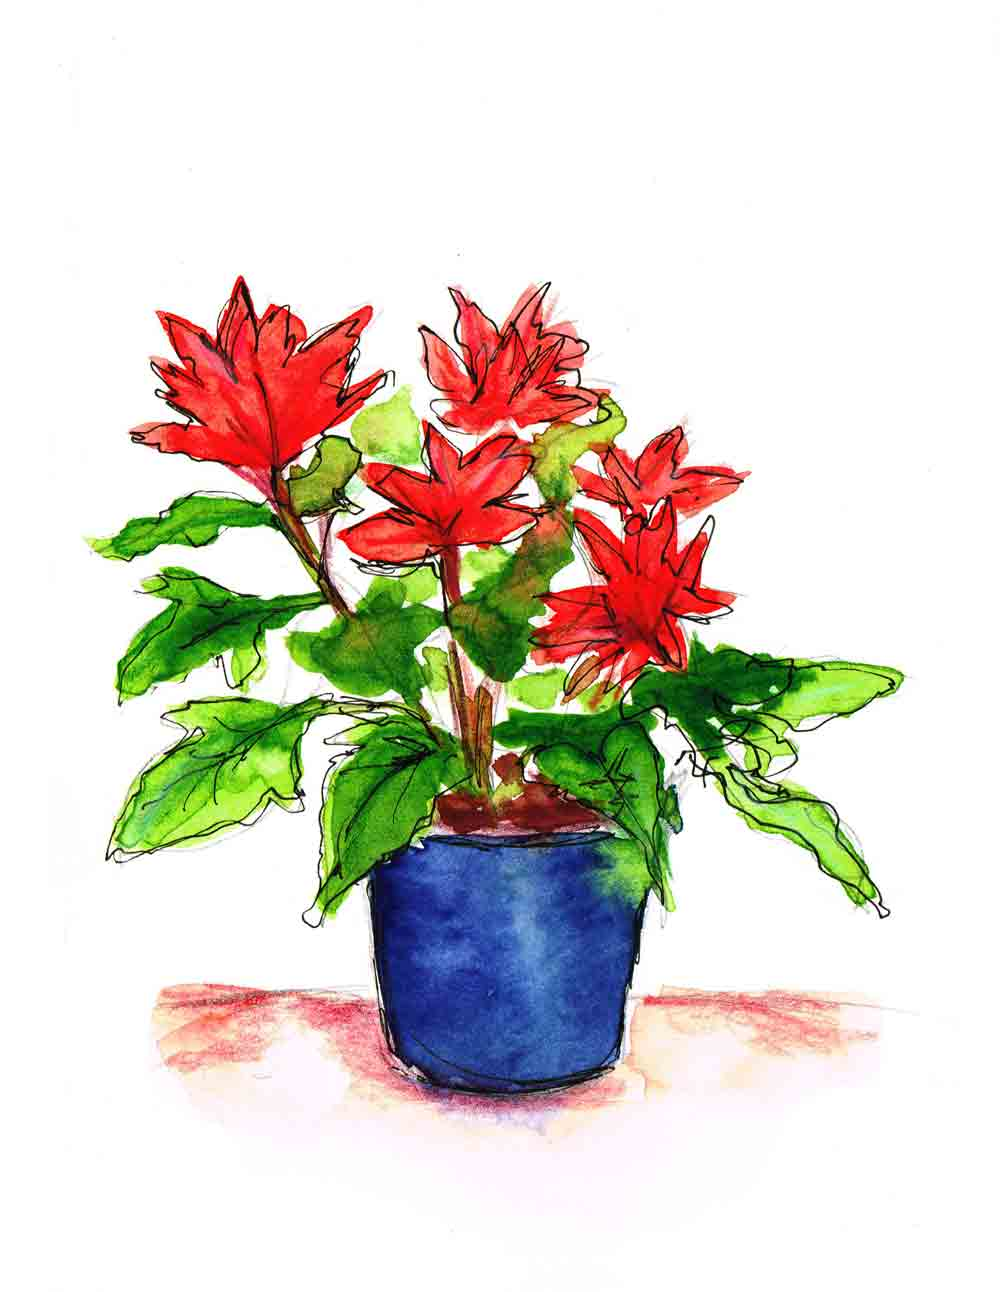 Poinsettia-Pot-Plants-in-pots-no-5-kw.jpg